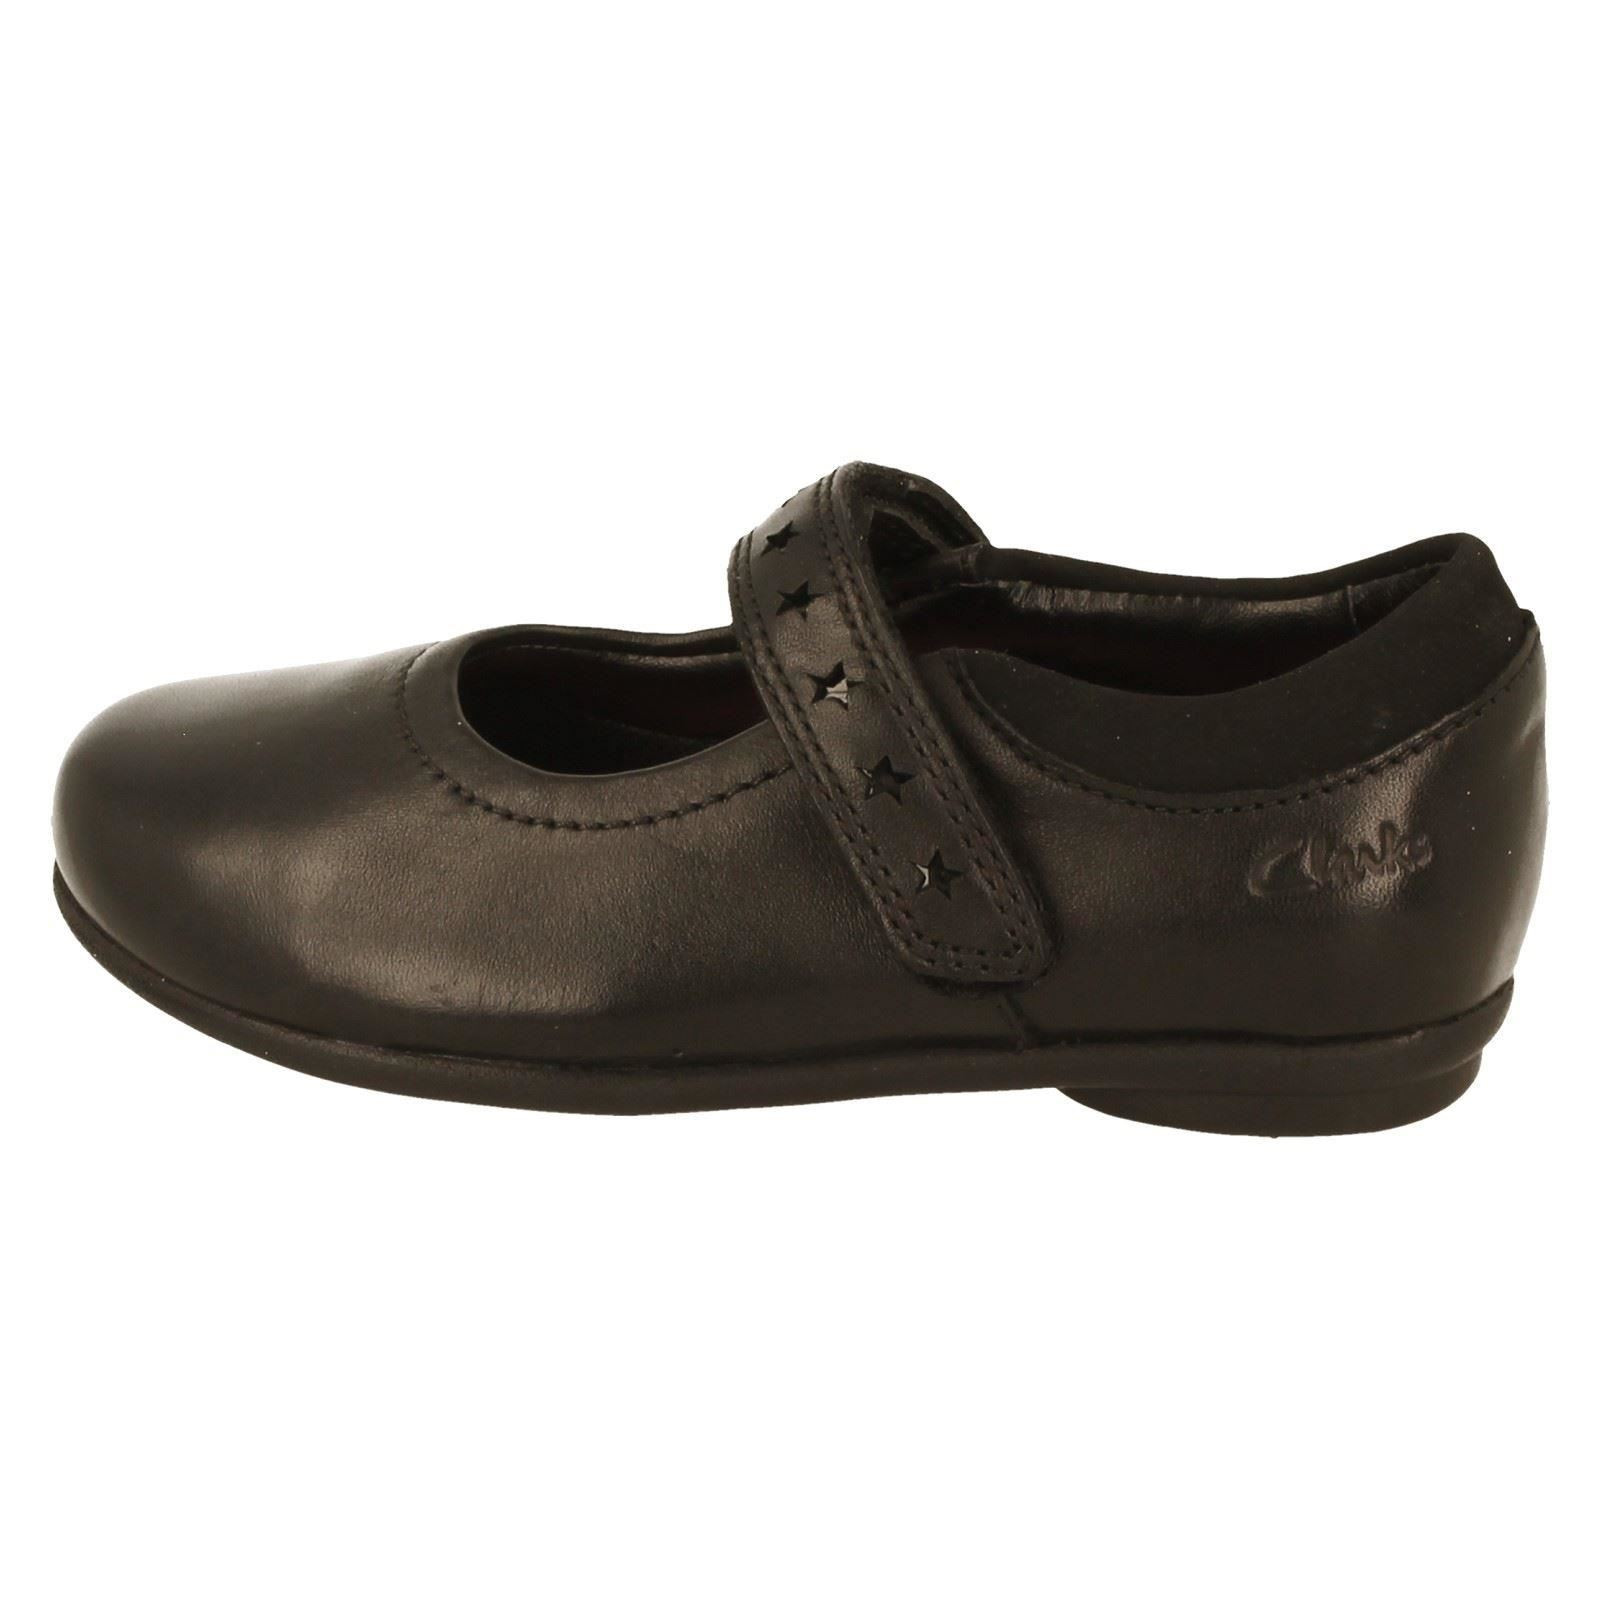 Girls Clarks School Shoes The Style Daisy Leap -W